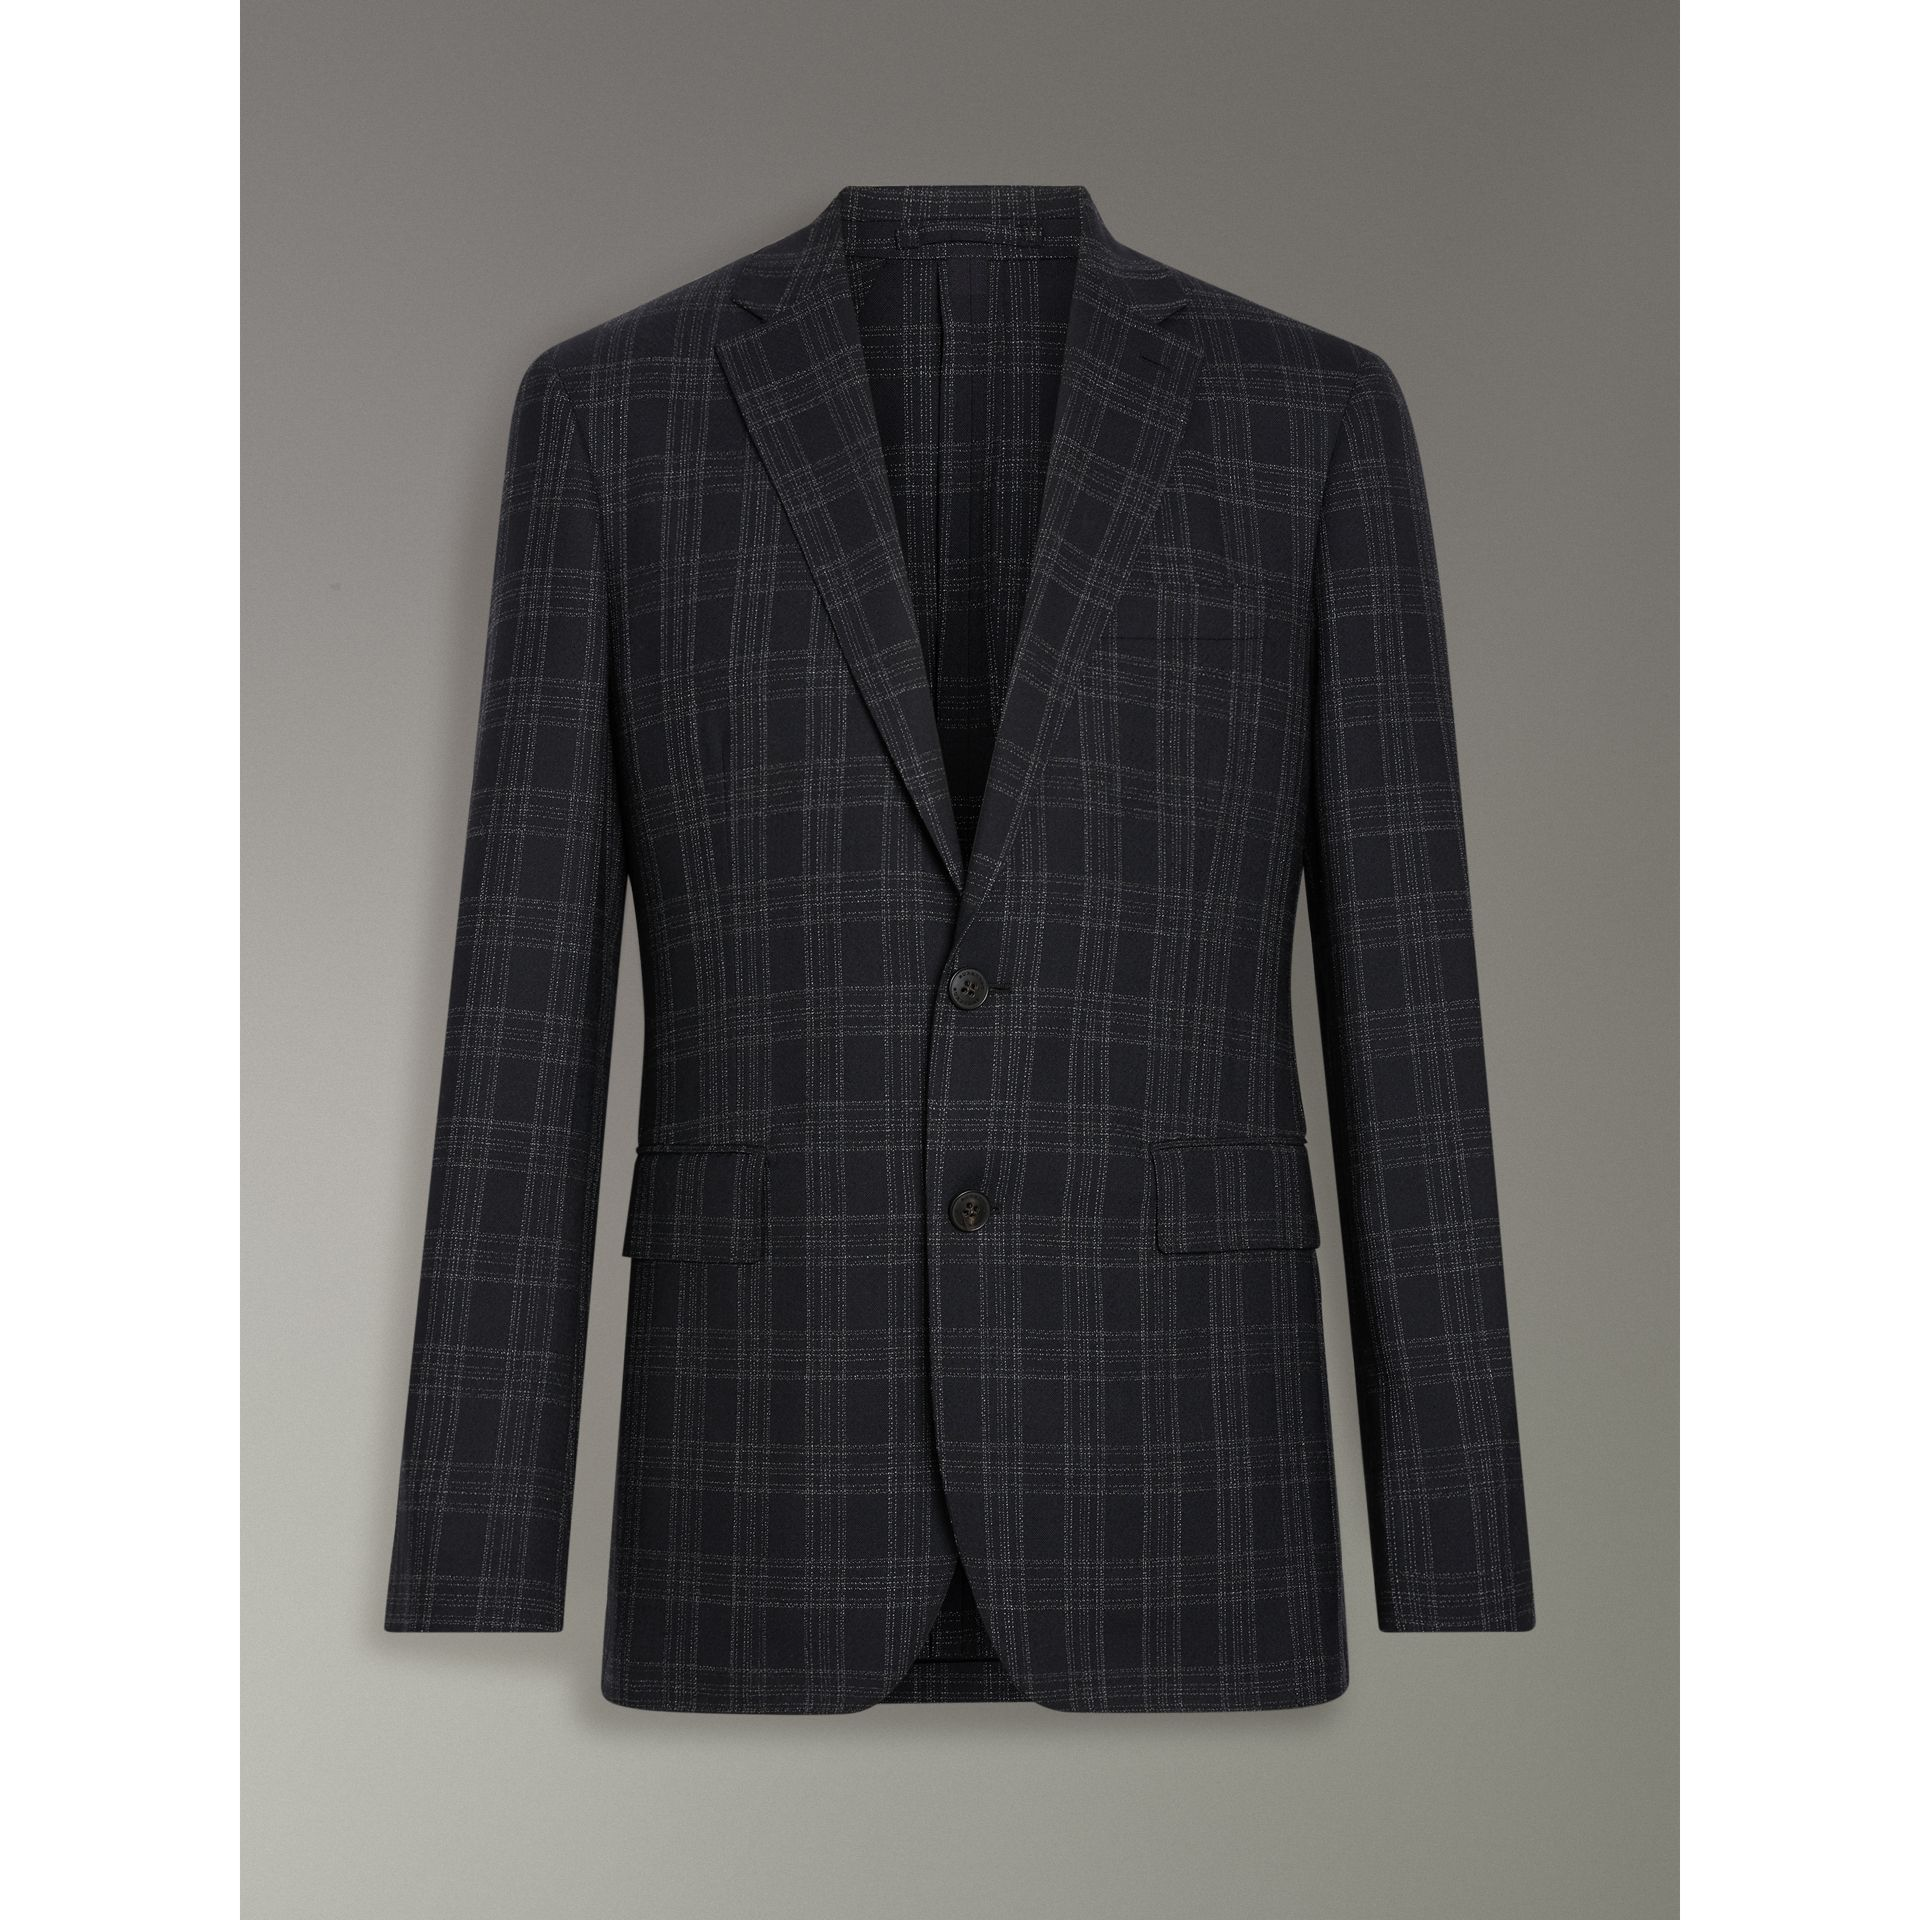 Soho Fit Check Wool Suit in Black - Men | Burberry United Kingdom - gallery image 3